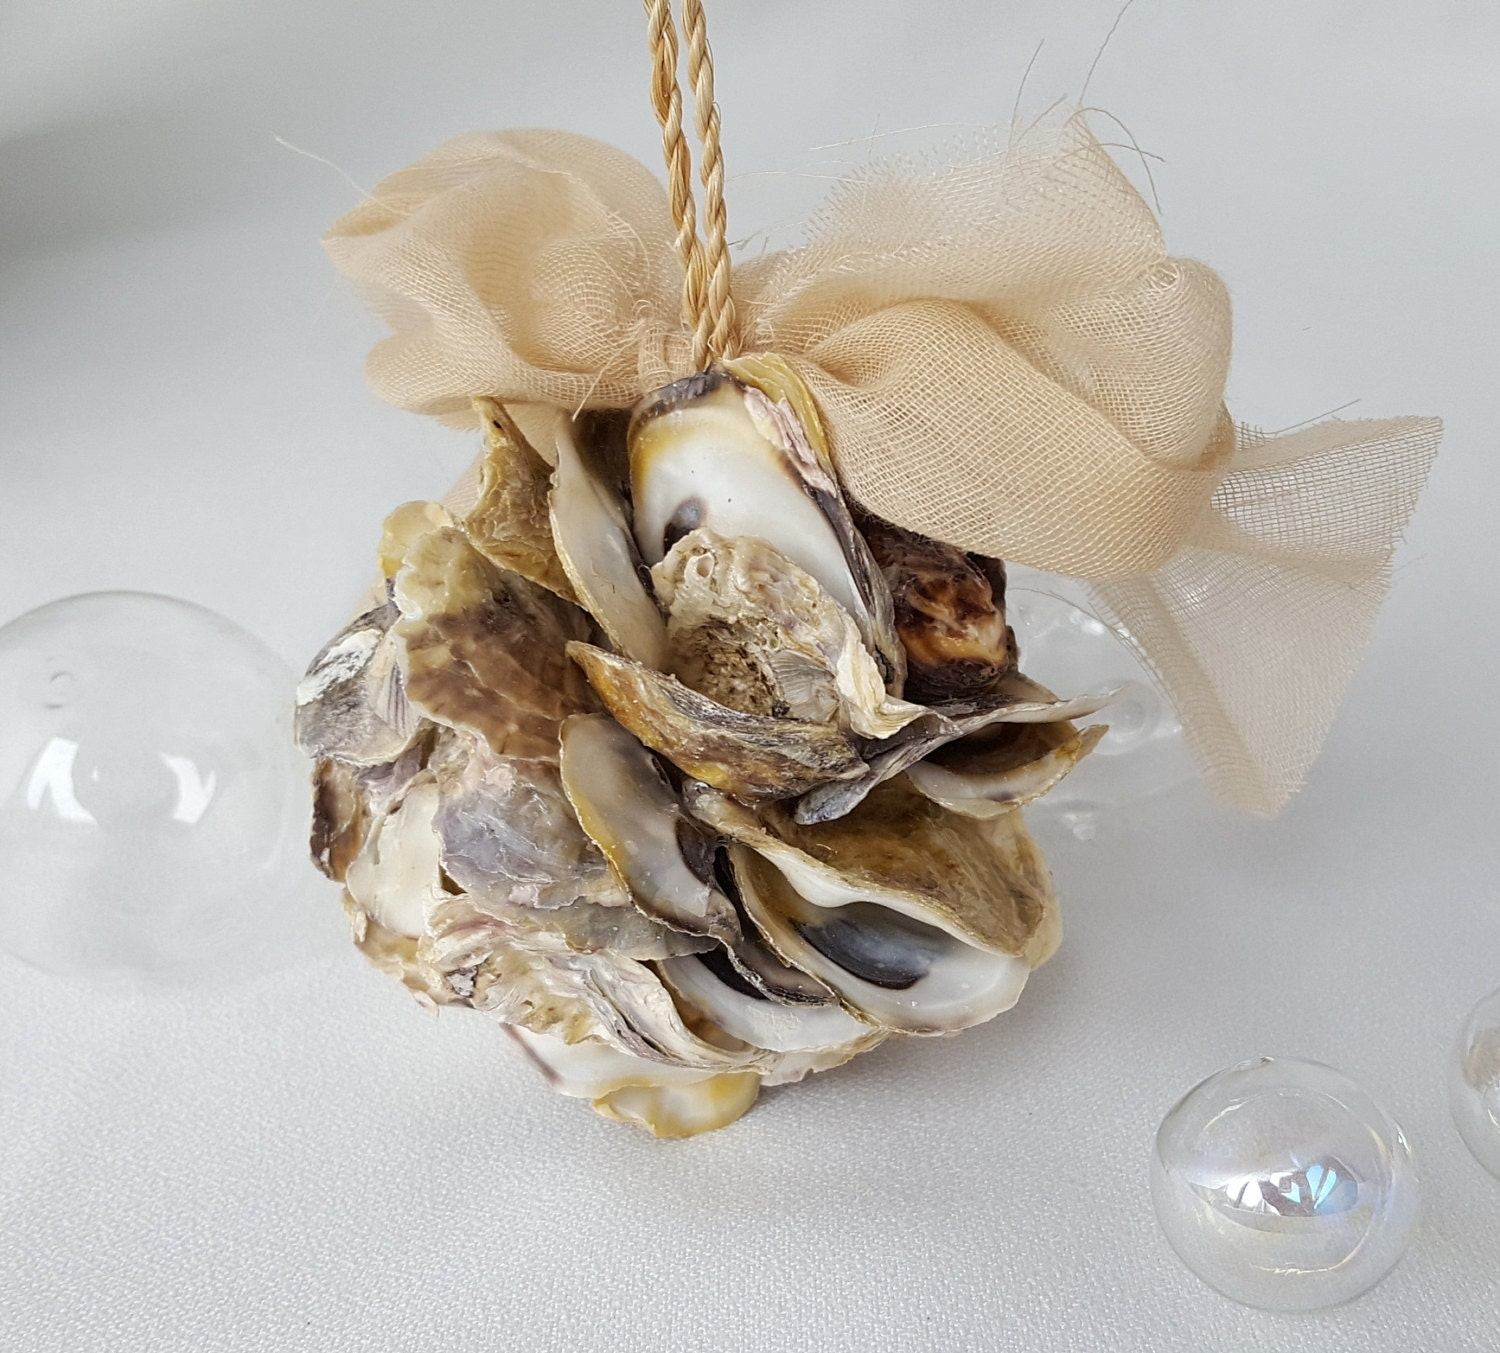 oyster shell decor decorchristmas ornament nautical decor oyster shell 1360